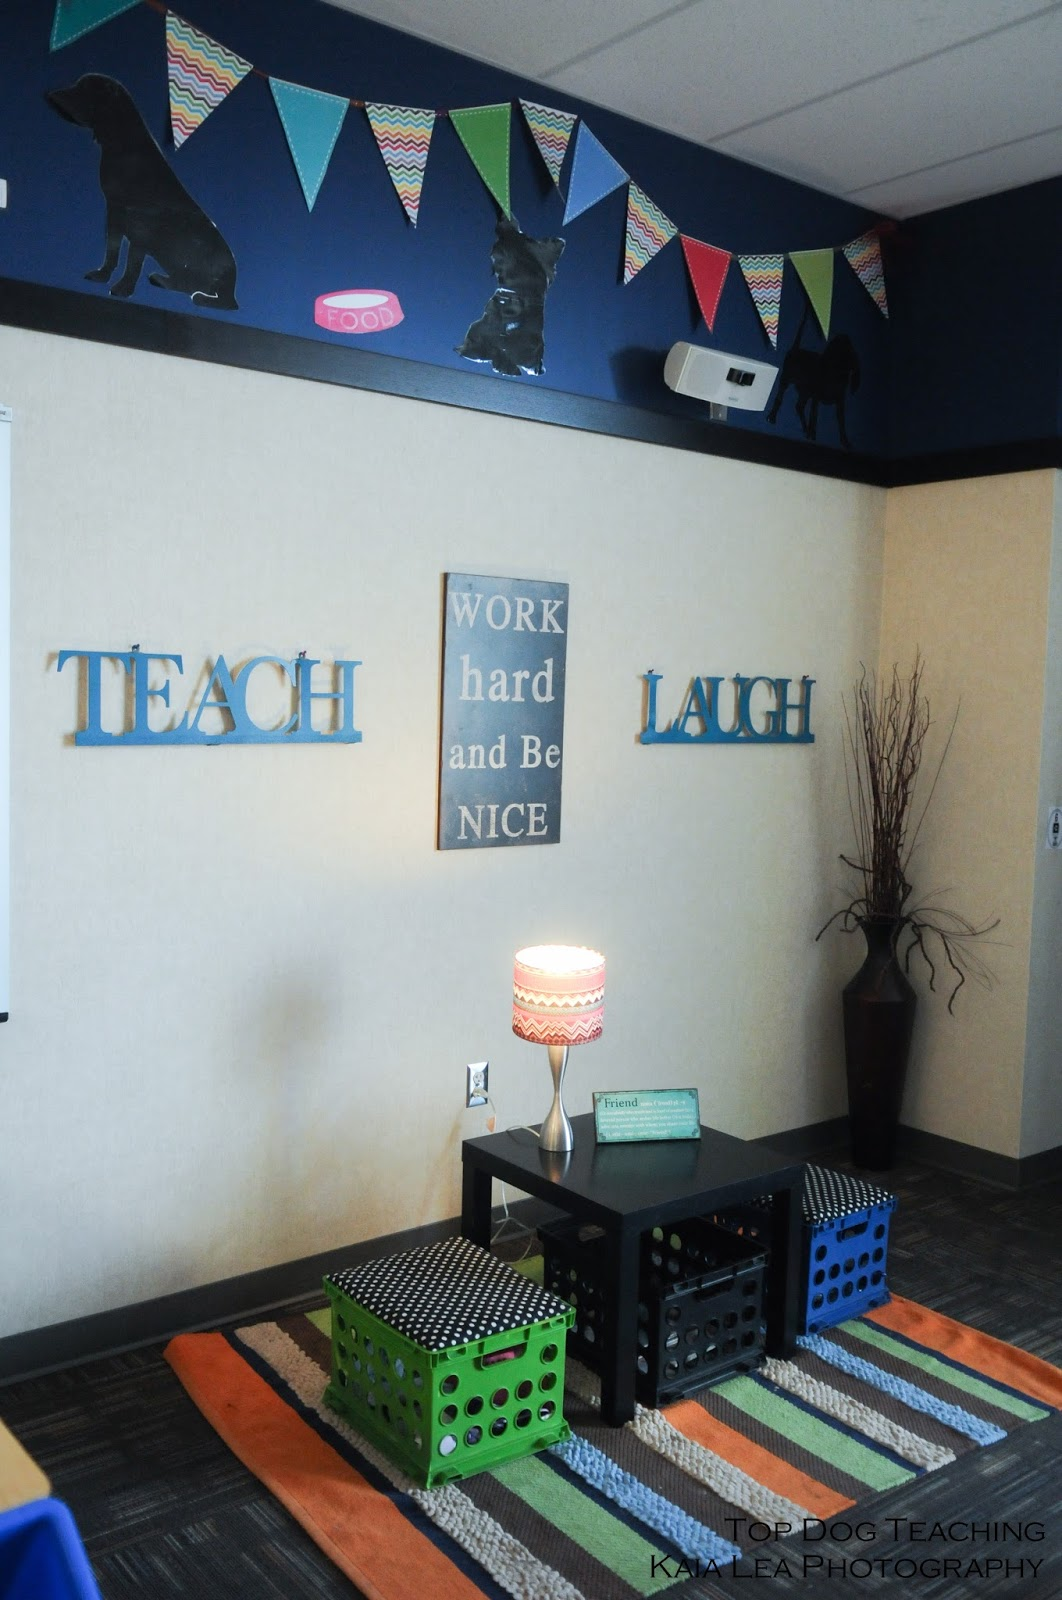 Classroom Design Inspiration ~ Top dog teaching classroom design inspiration